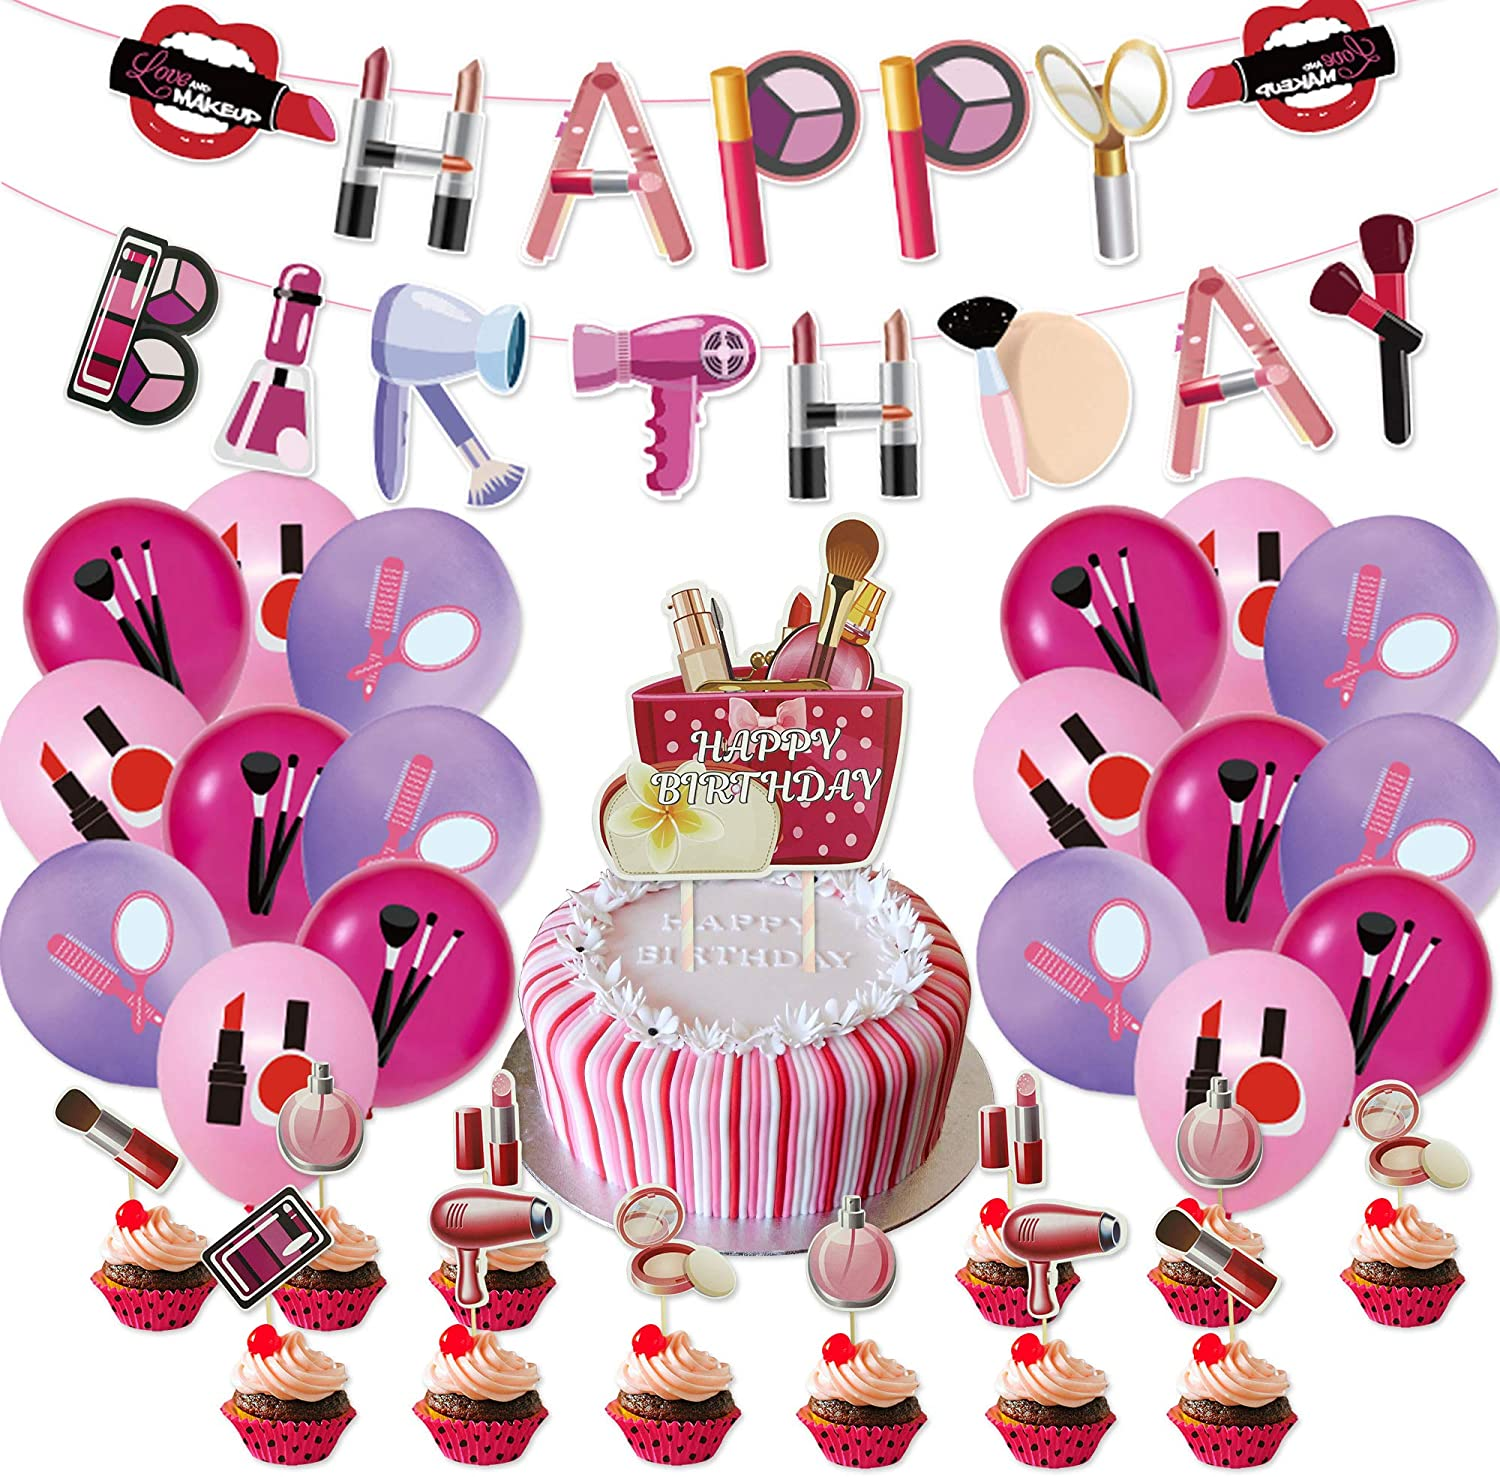 Makeup Birthday Party Decorations 44PCS Salon Women Home Party 18 Pack Balloons, 1 Pack Banner, 24 Pack Small Cake Toppers, 1 Big Cake Toppers Spa Theme Decor for Girls